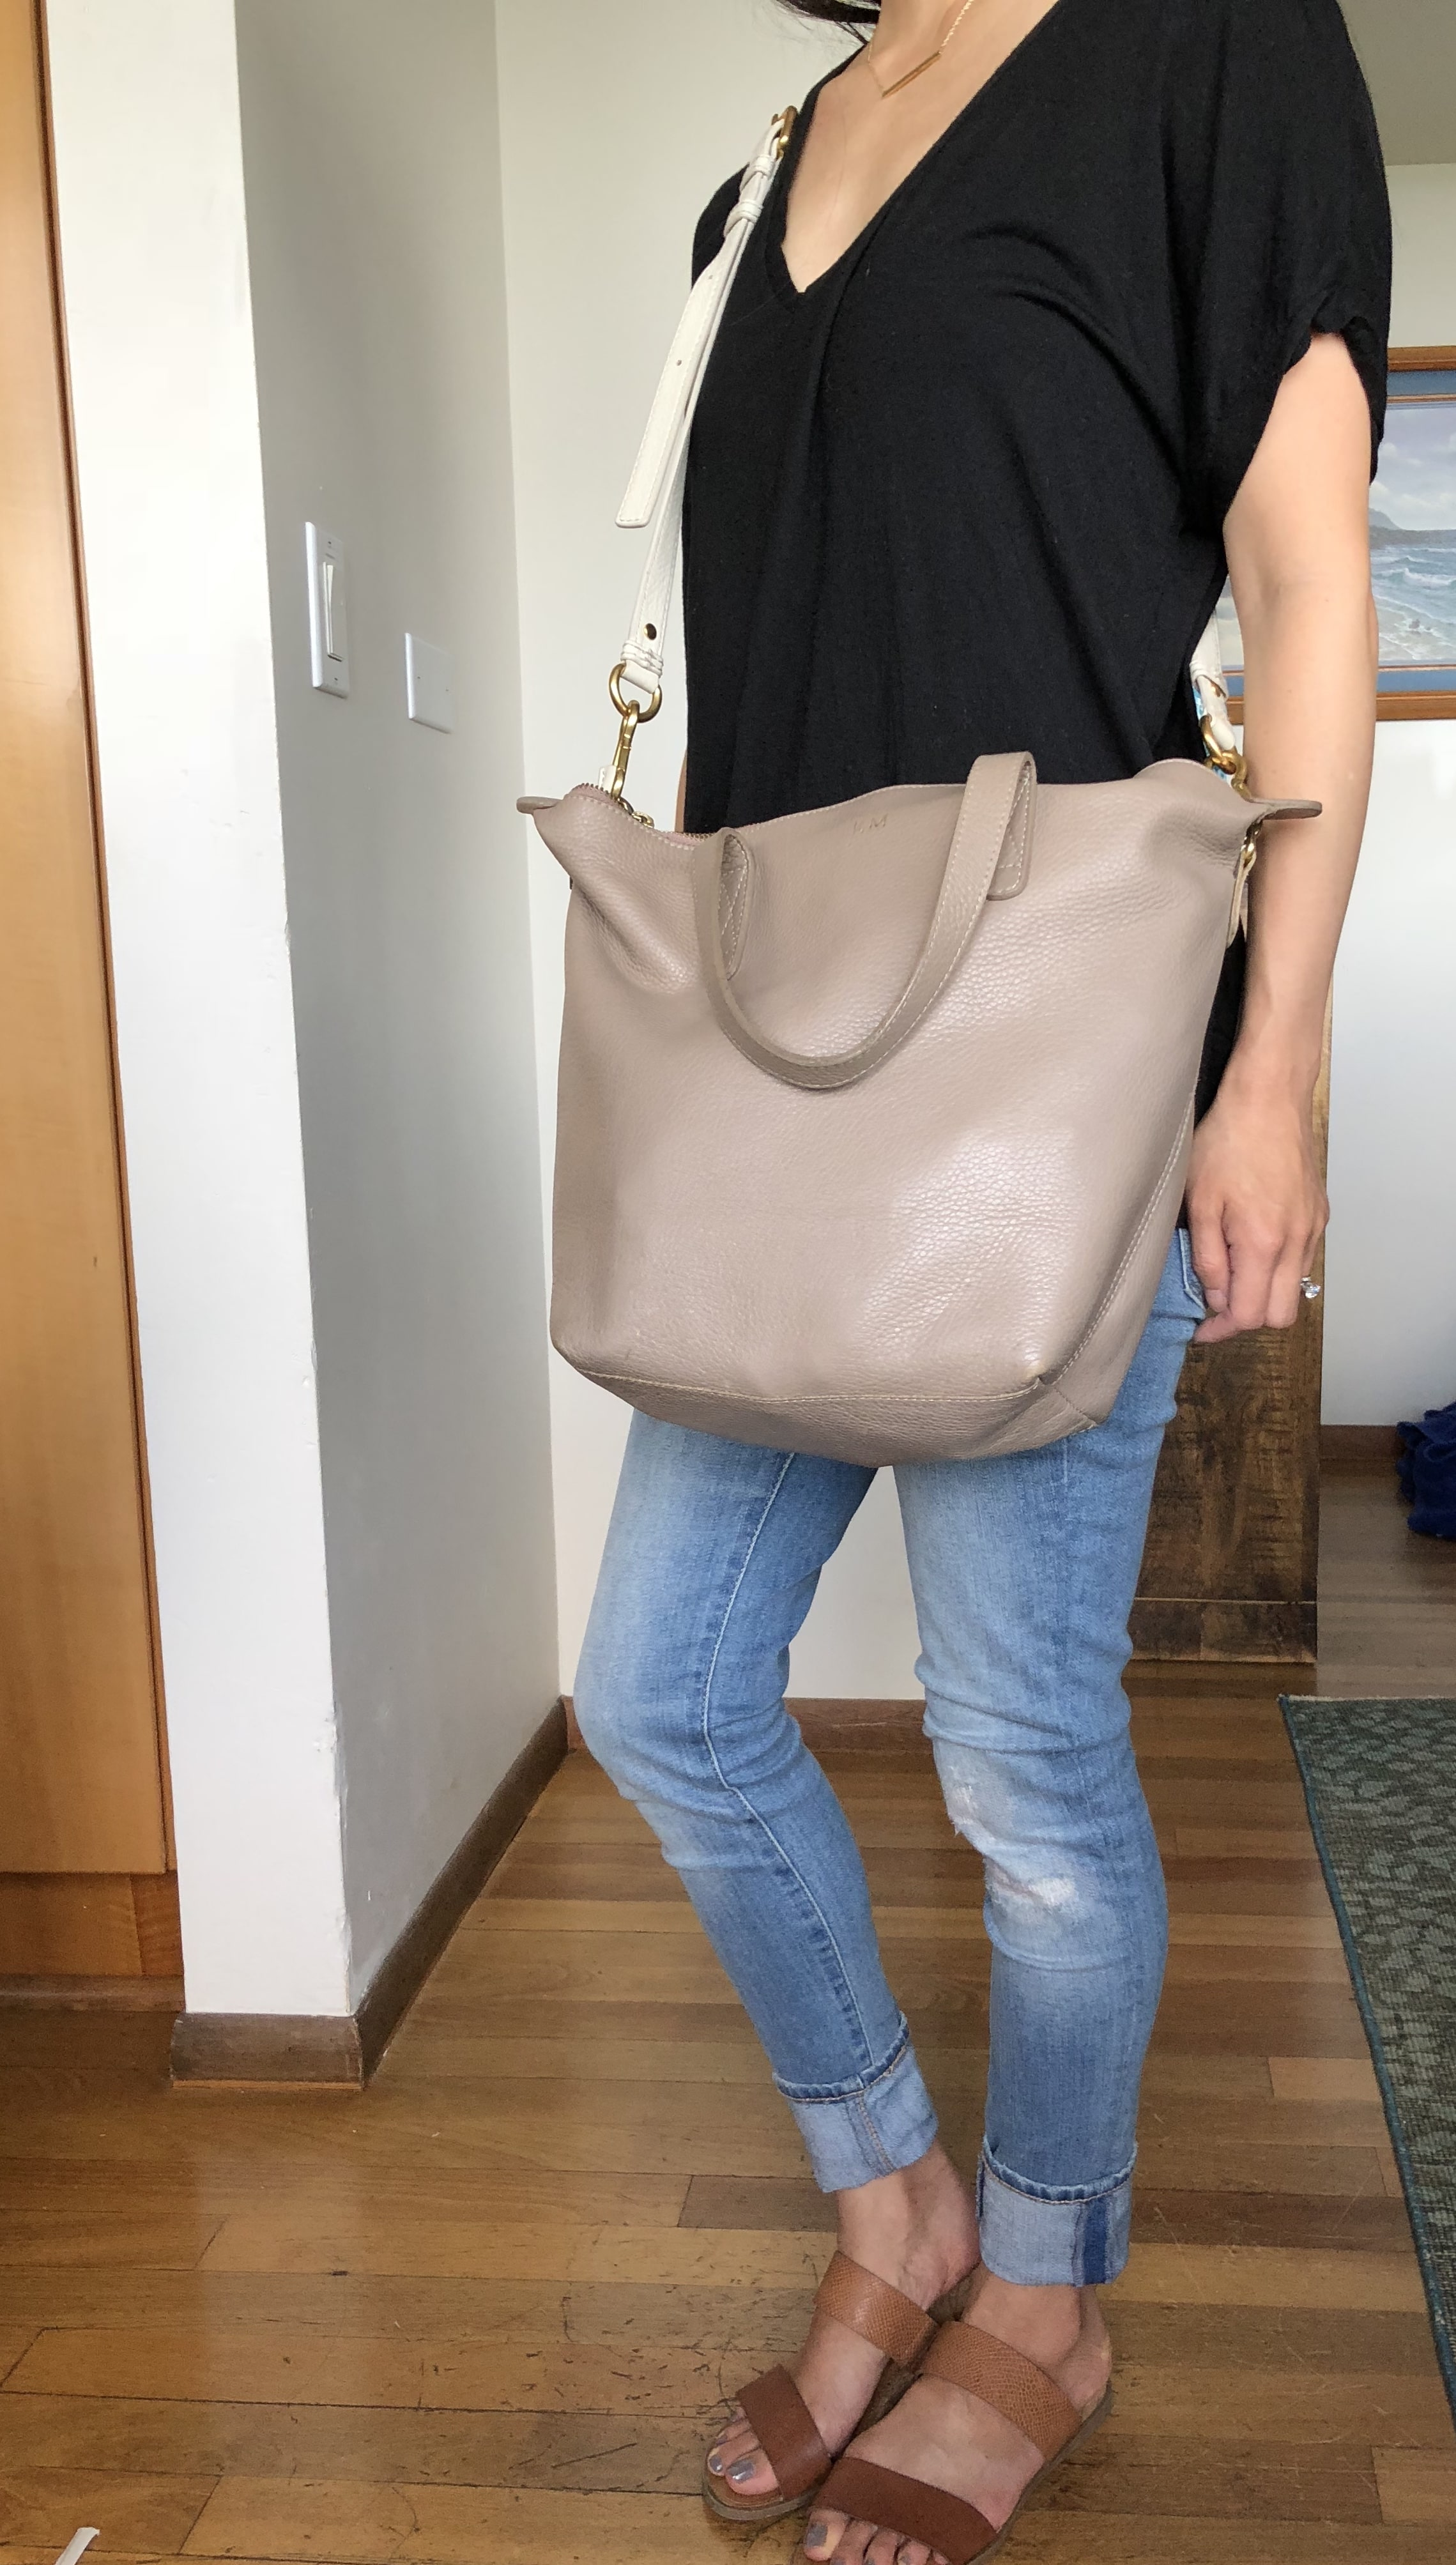 Cuyana classic tote review